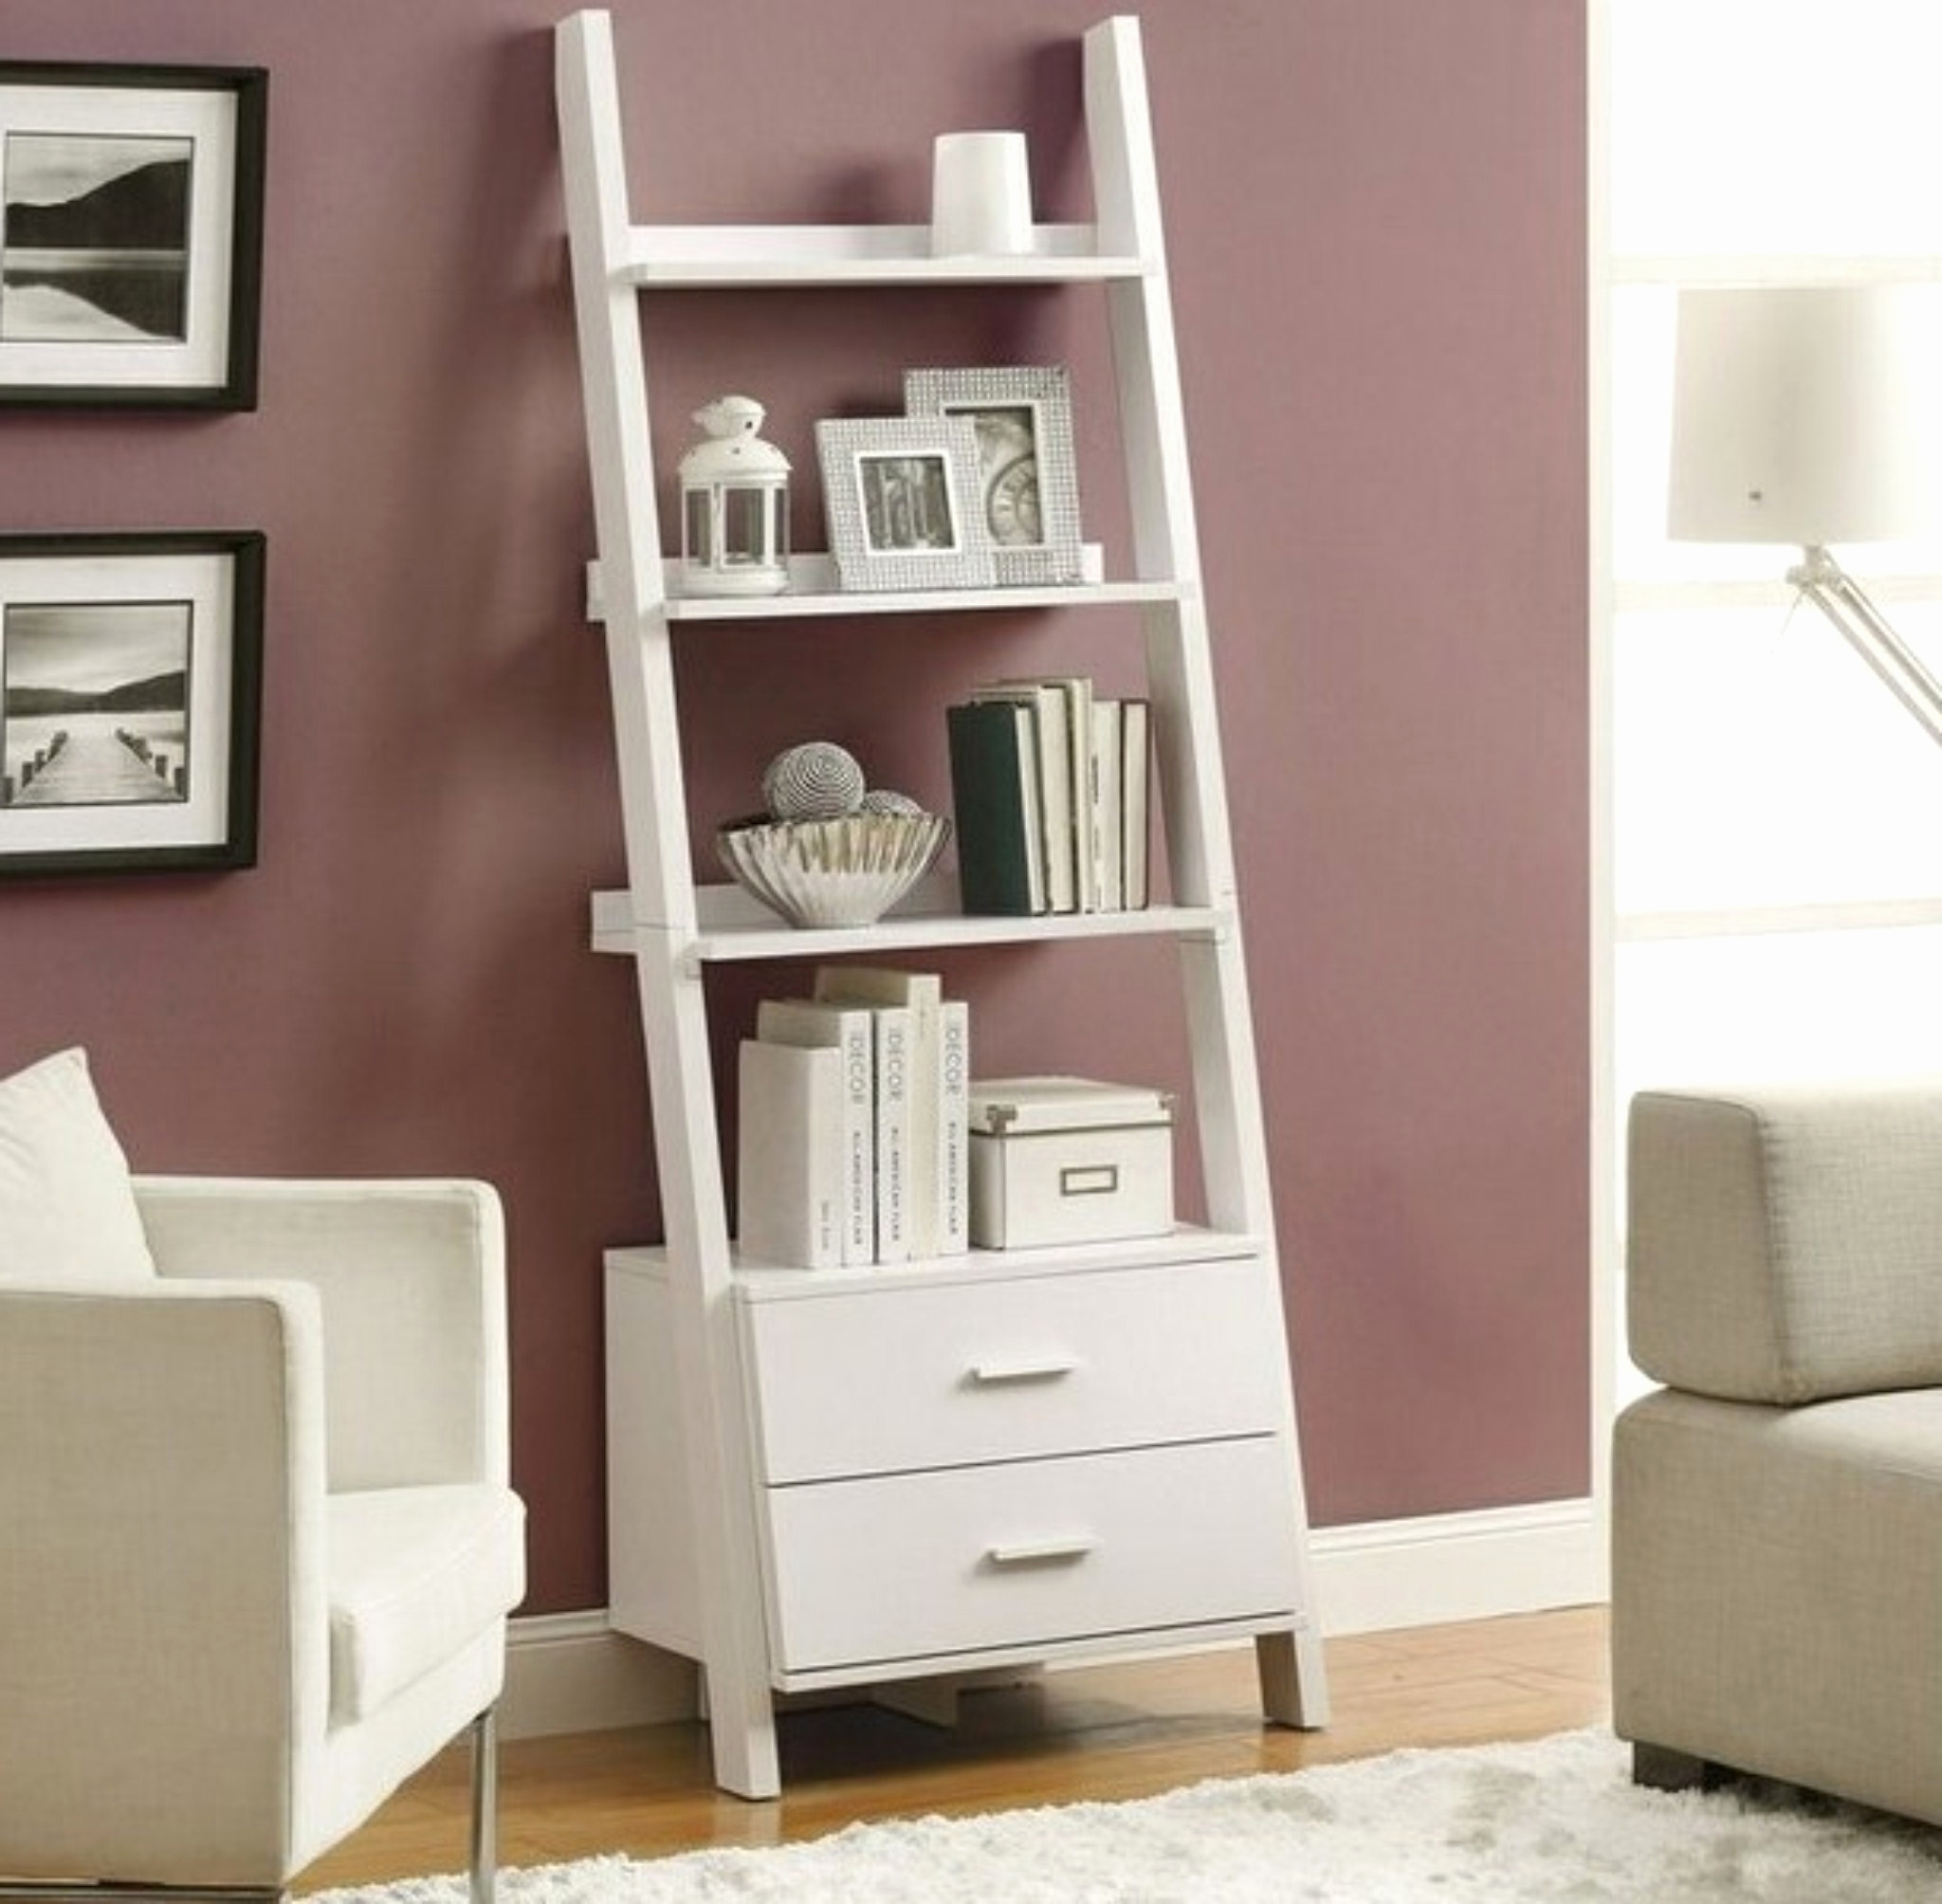 Ballard Designs Bookcases Intended For Preferred 46 New Ballard Designs Bookcase – (View 4 of 15)